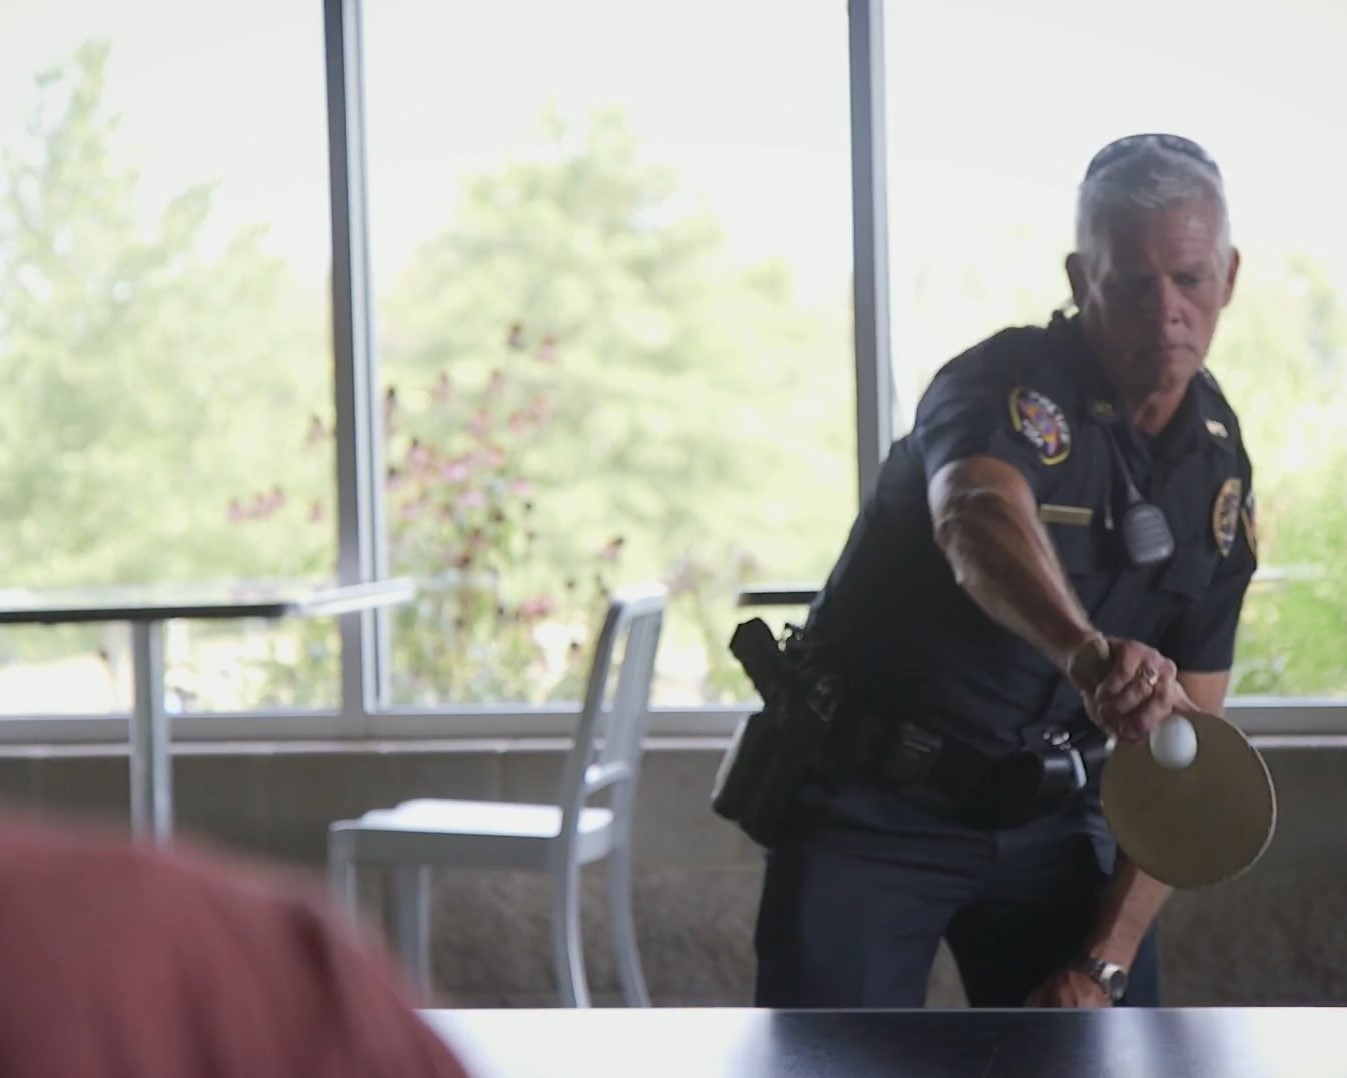 OFFICER PLAYING PING PONG